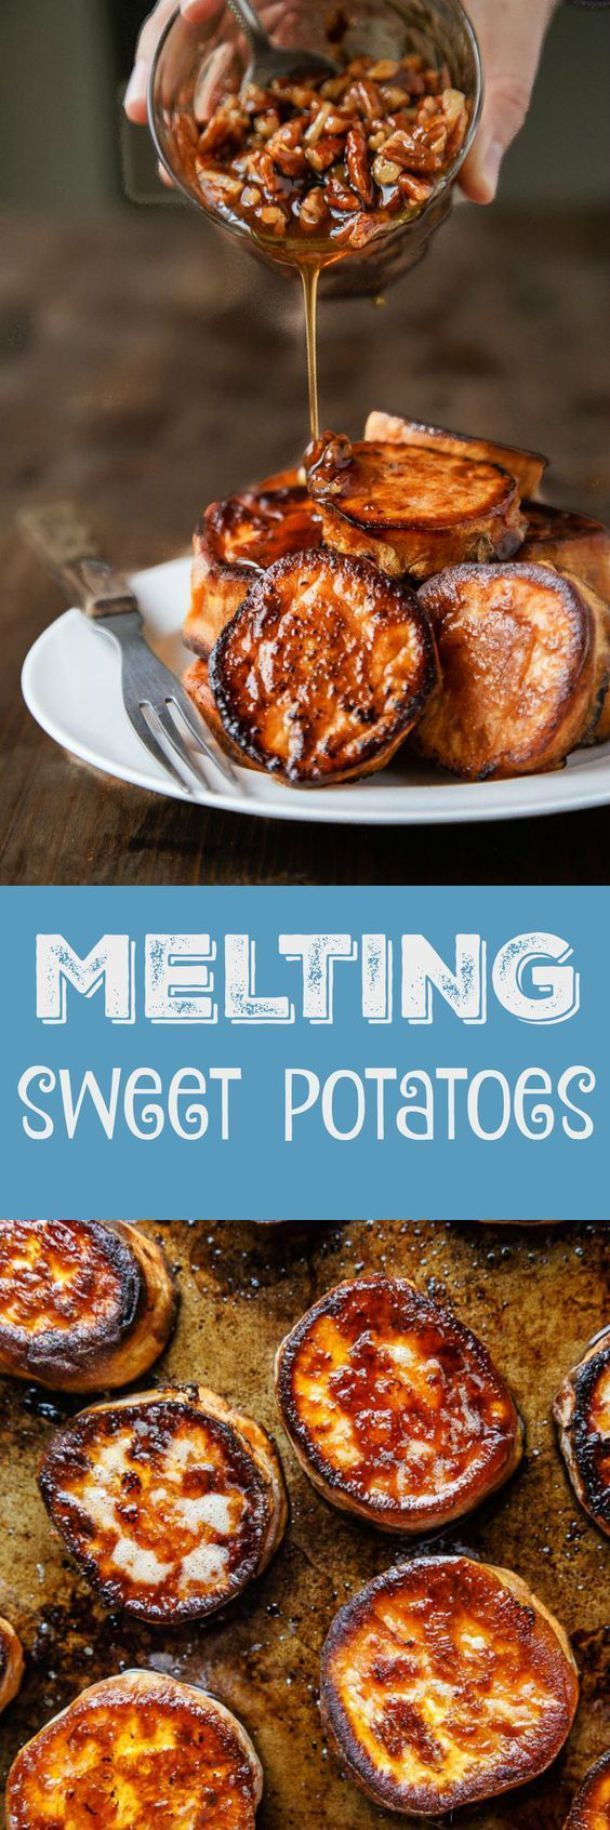 1349 best foods images on Pinterest | Baking center, Breads and Food ...